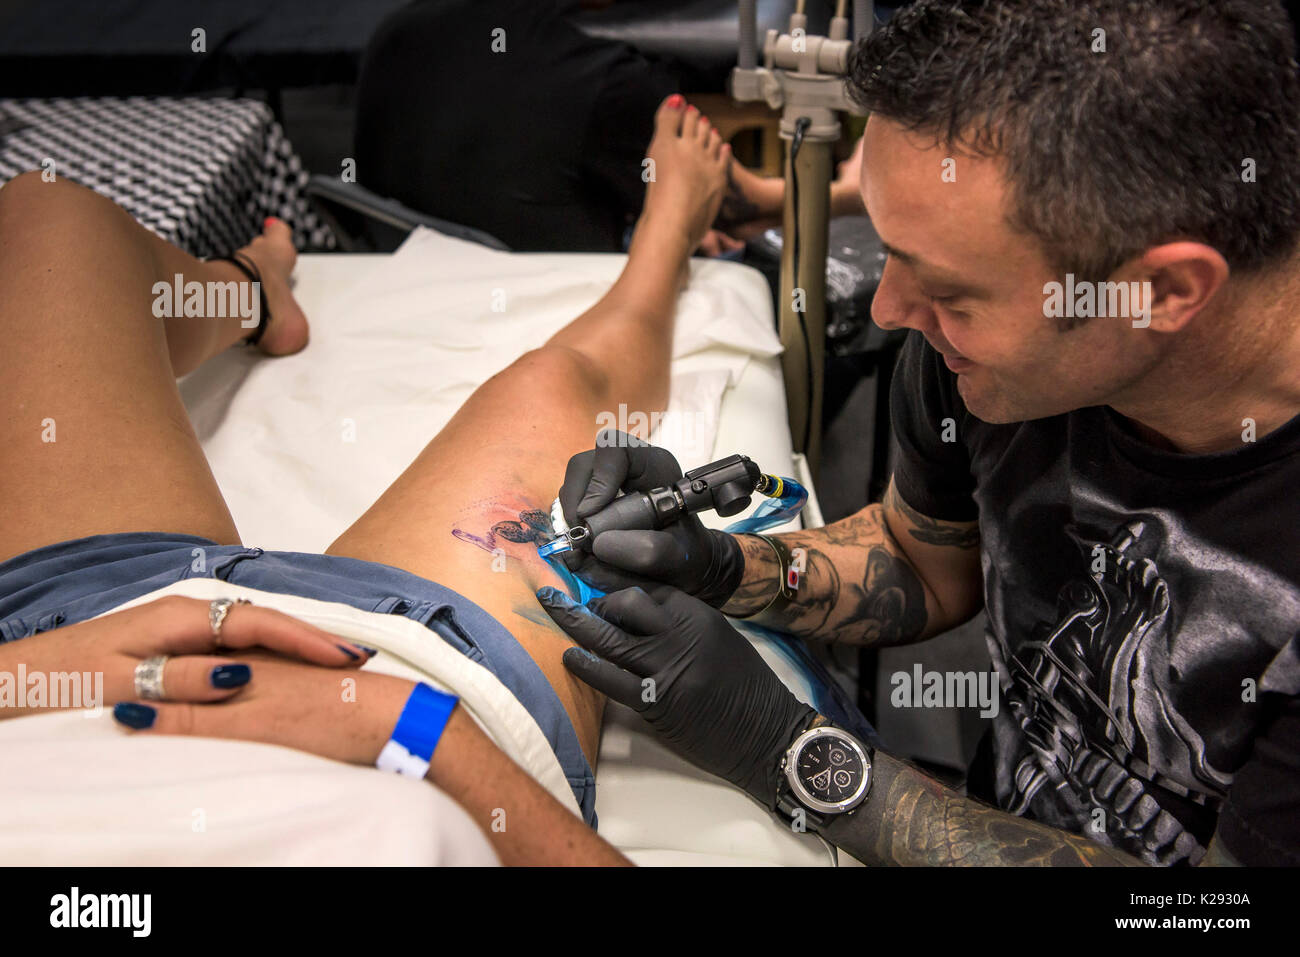 Tattoo - Mark Breed tattooing a design on the thigh of a female customer at the Cornwall Tattoo Convention. - Stock Image